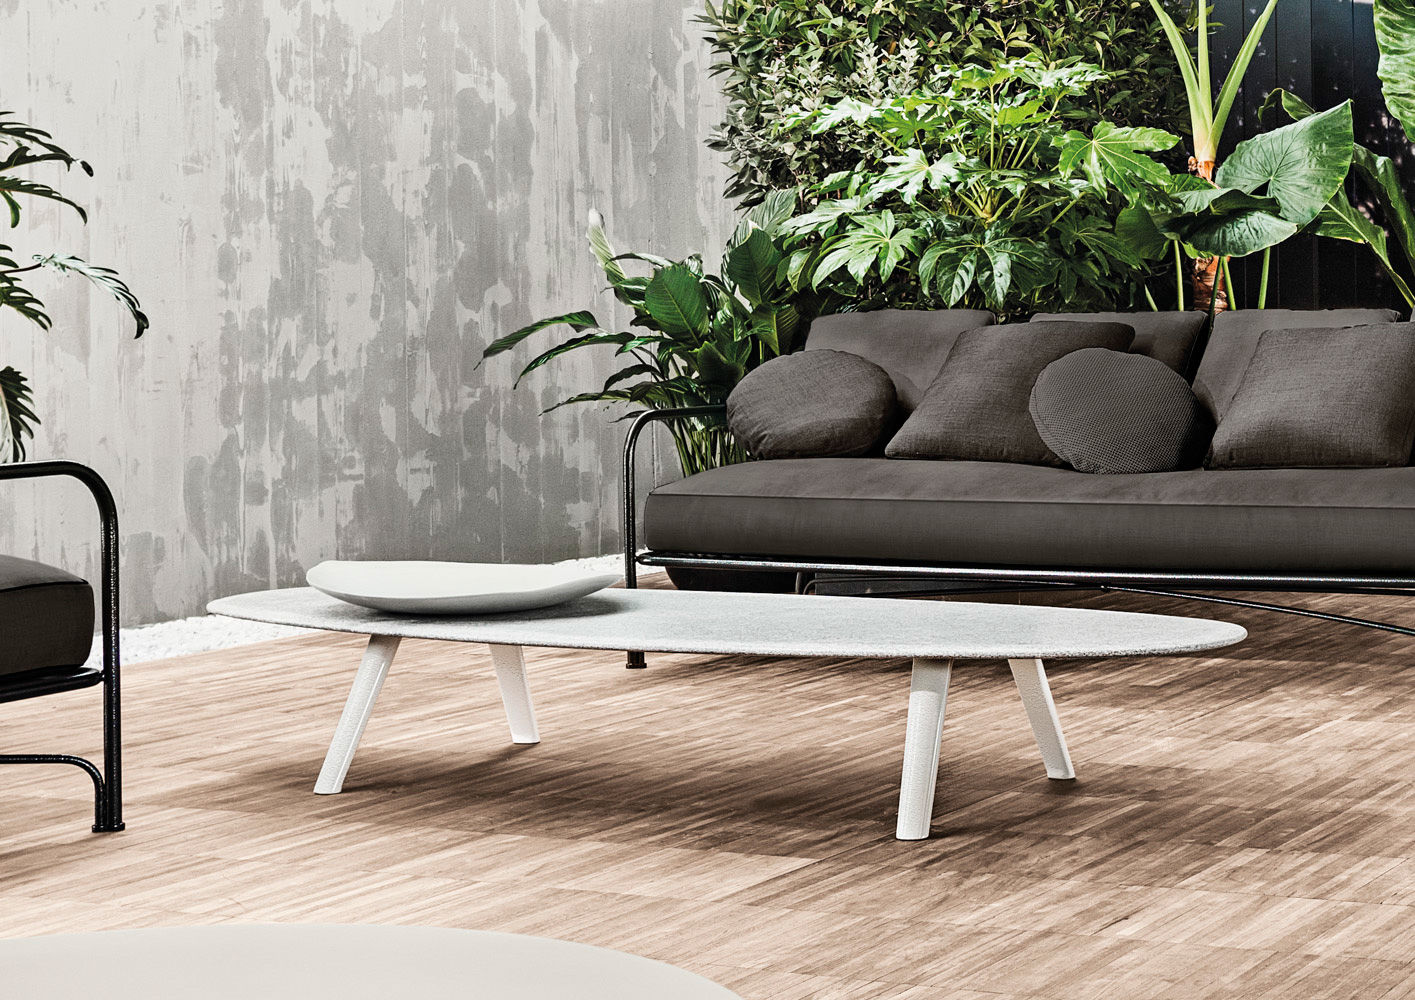 Sullivan Low Table Outdoor-Min